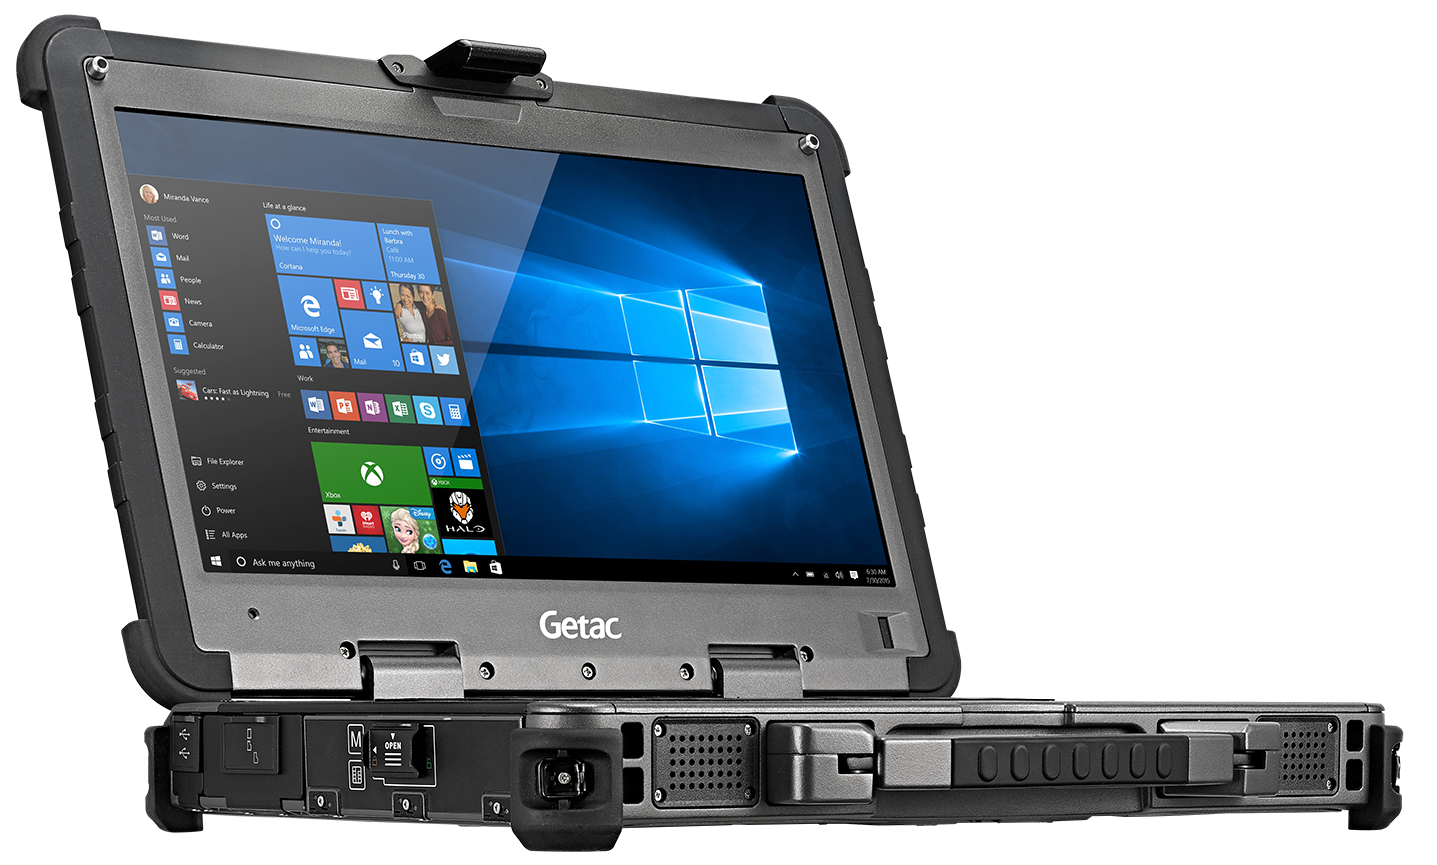 Side view of the Getax X500 rugged laptop